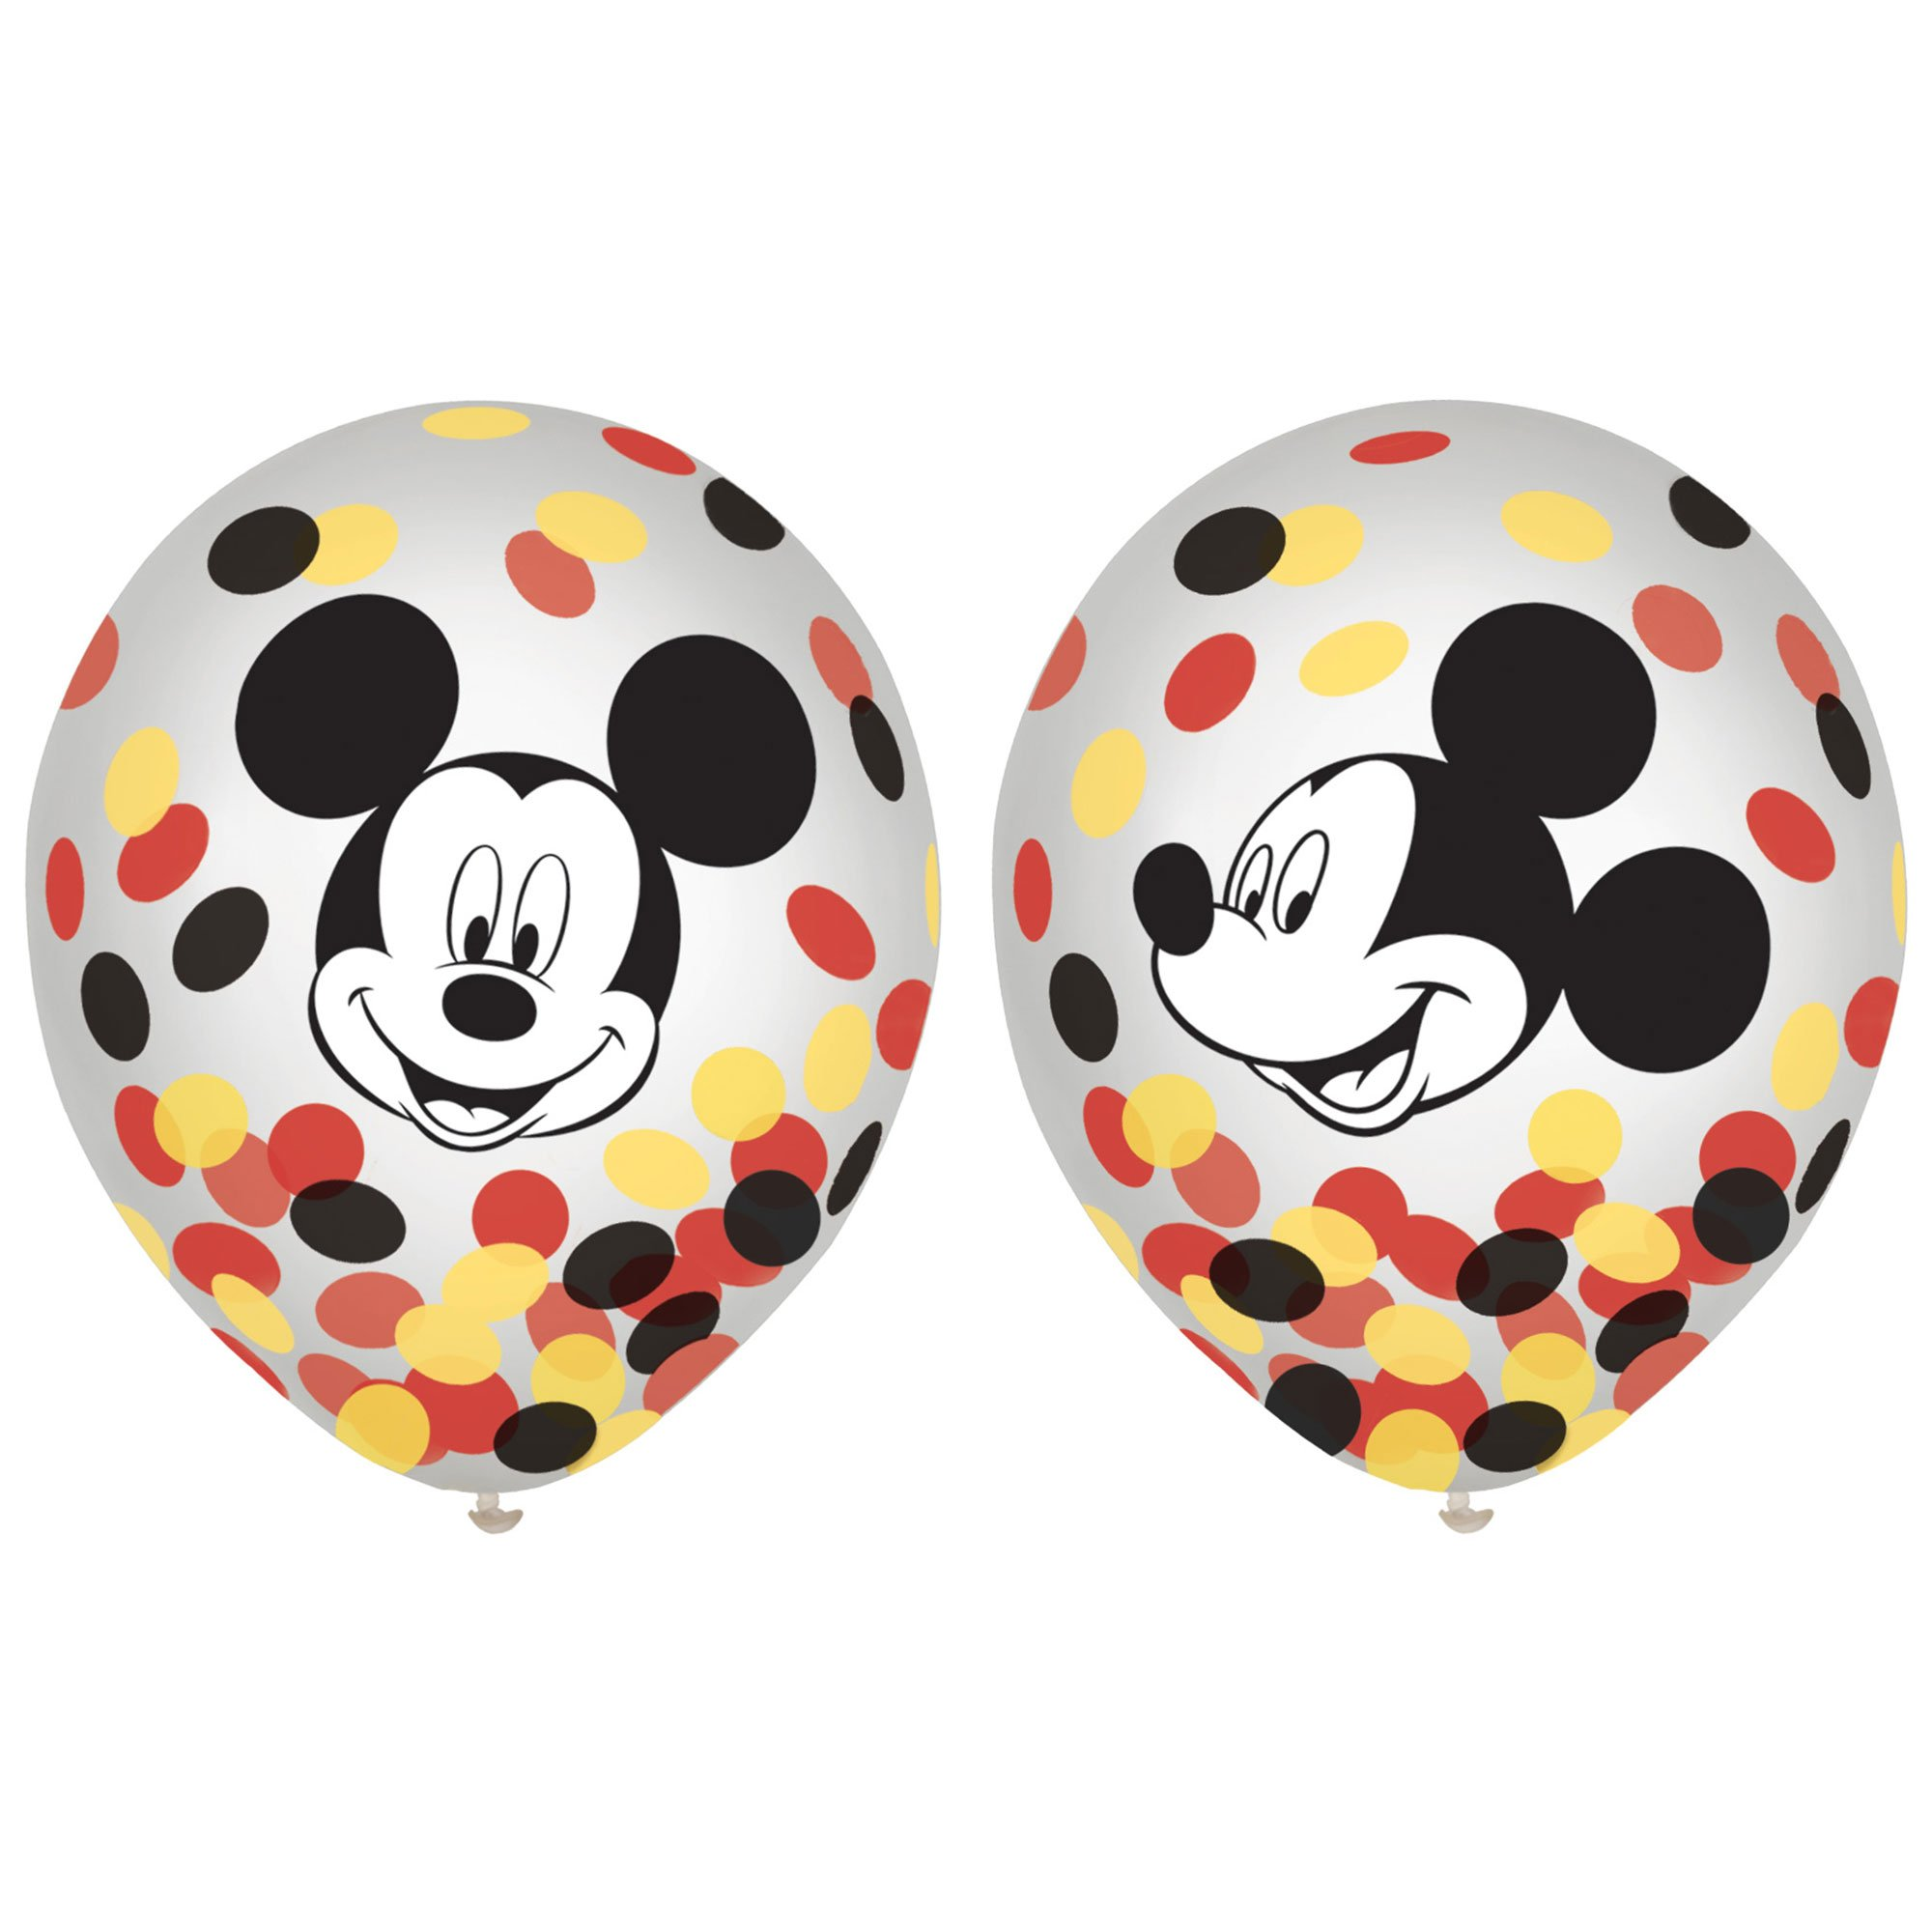 Mickey Mouse Forever 30cm Latex Balloons & Confetti